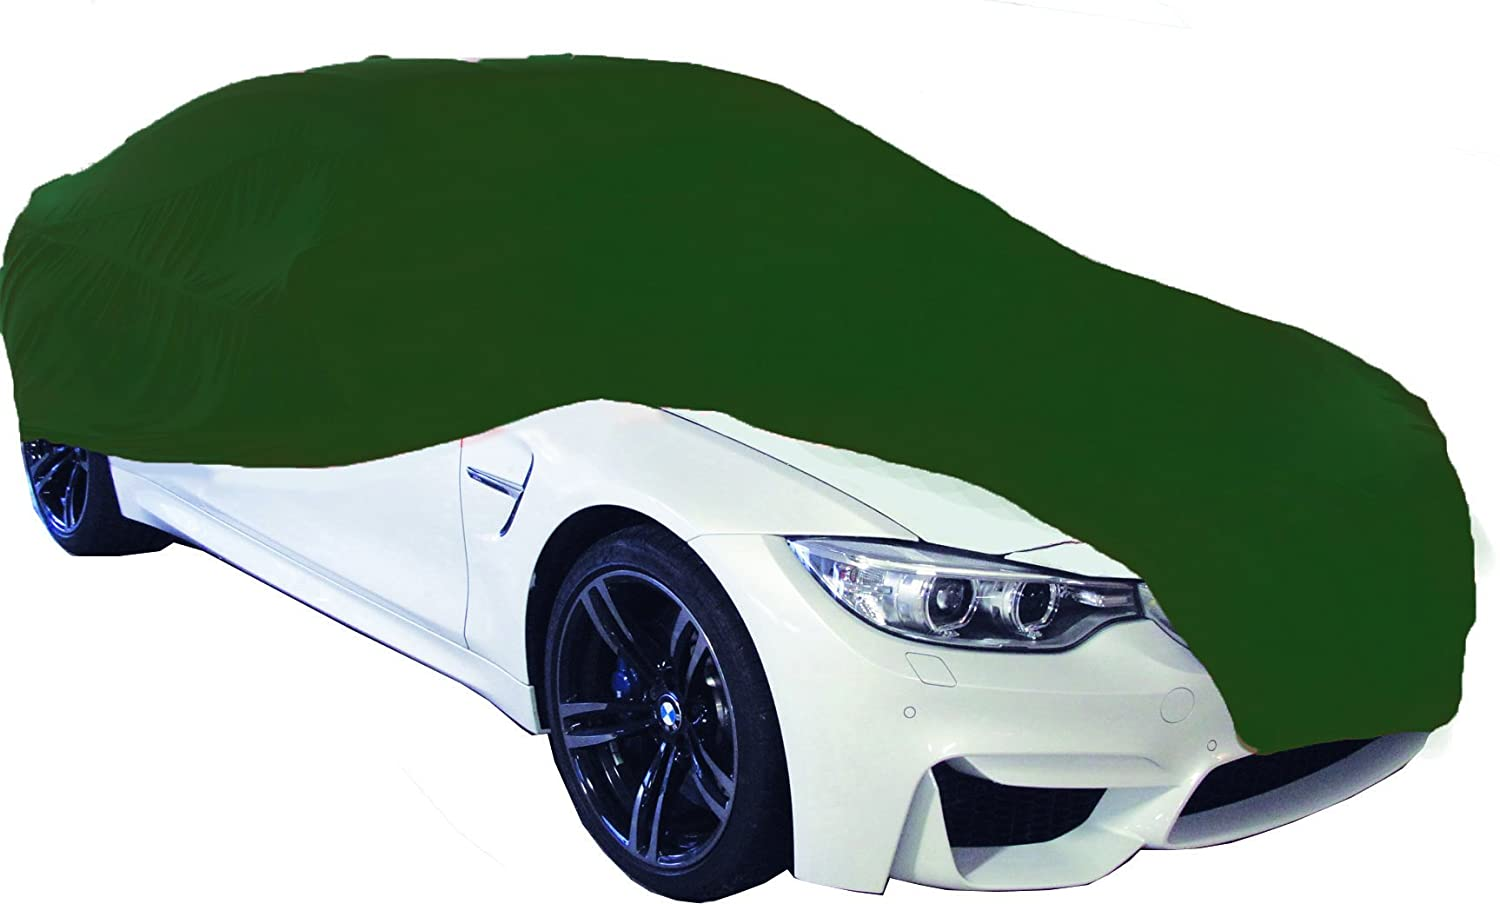 Cosmos Indoor Garage Car Cover Large Green 10334 Cosmos Car Accessories